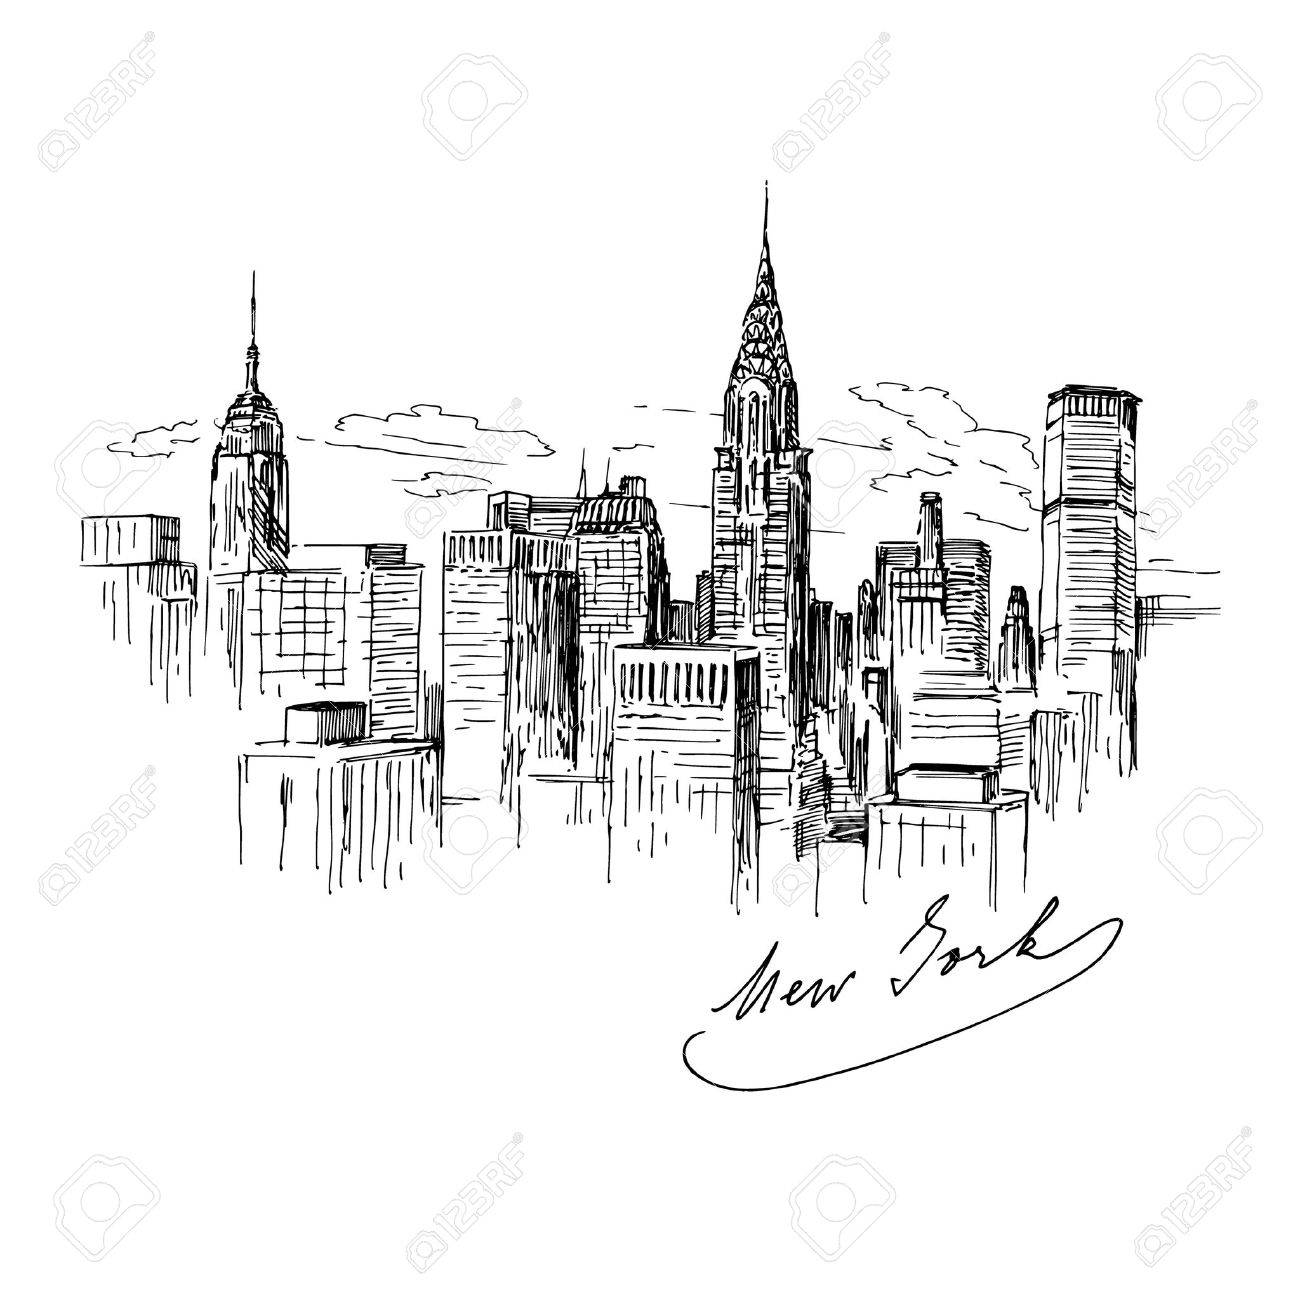 New York - Hand gezeichnete Illustration Standard-Bild - 25307906